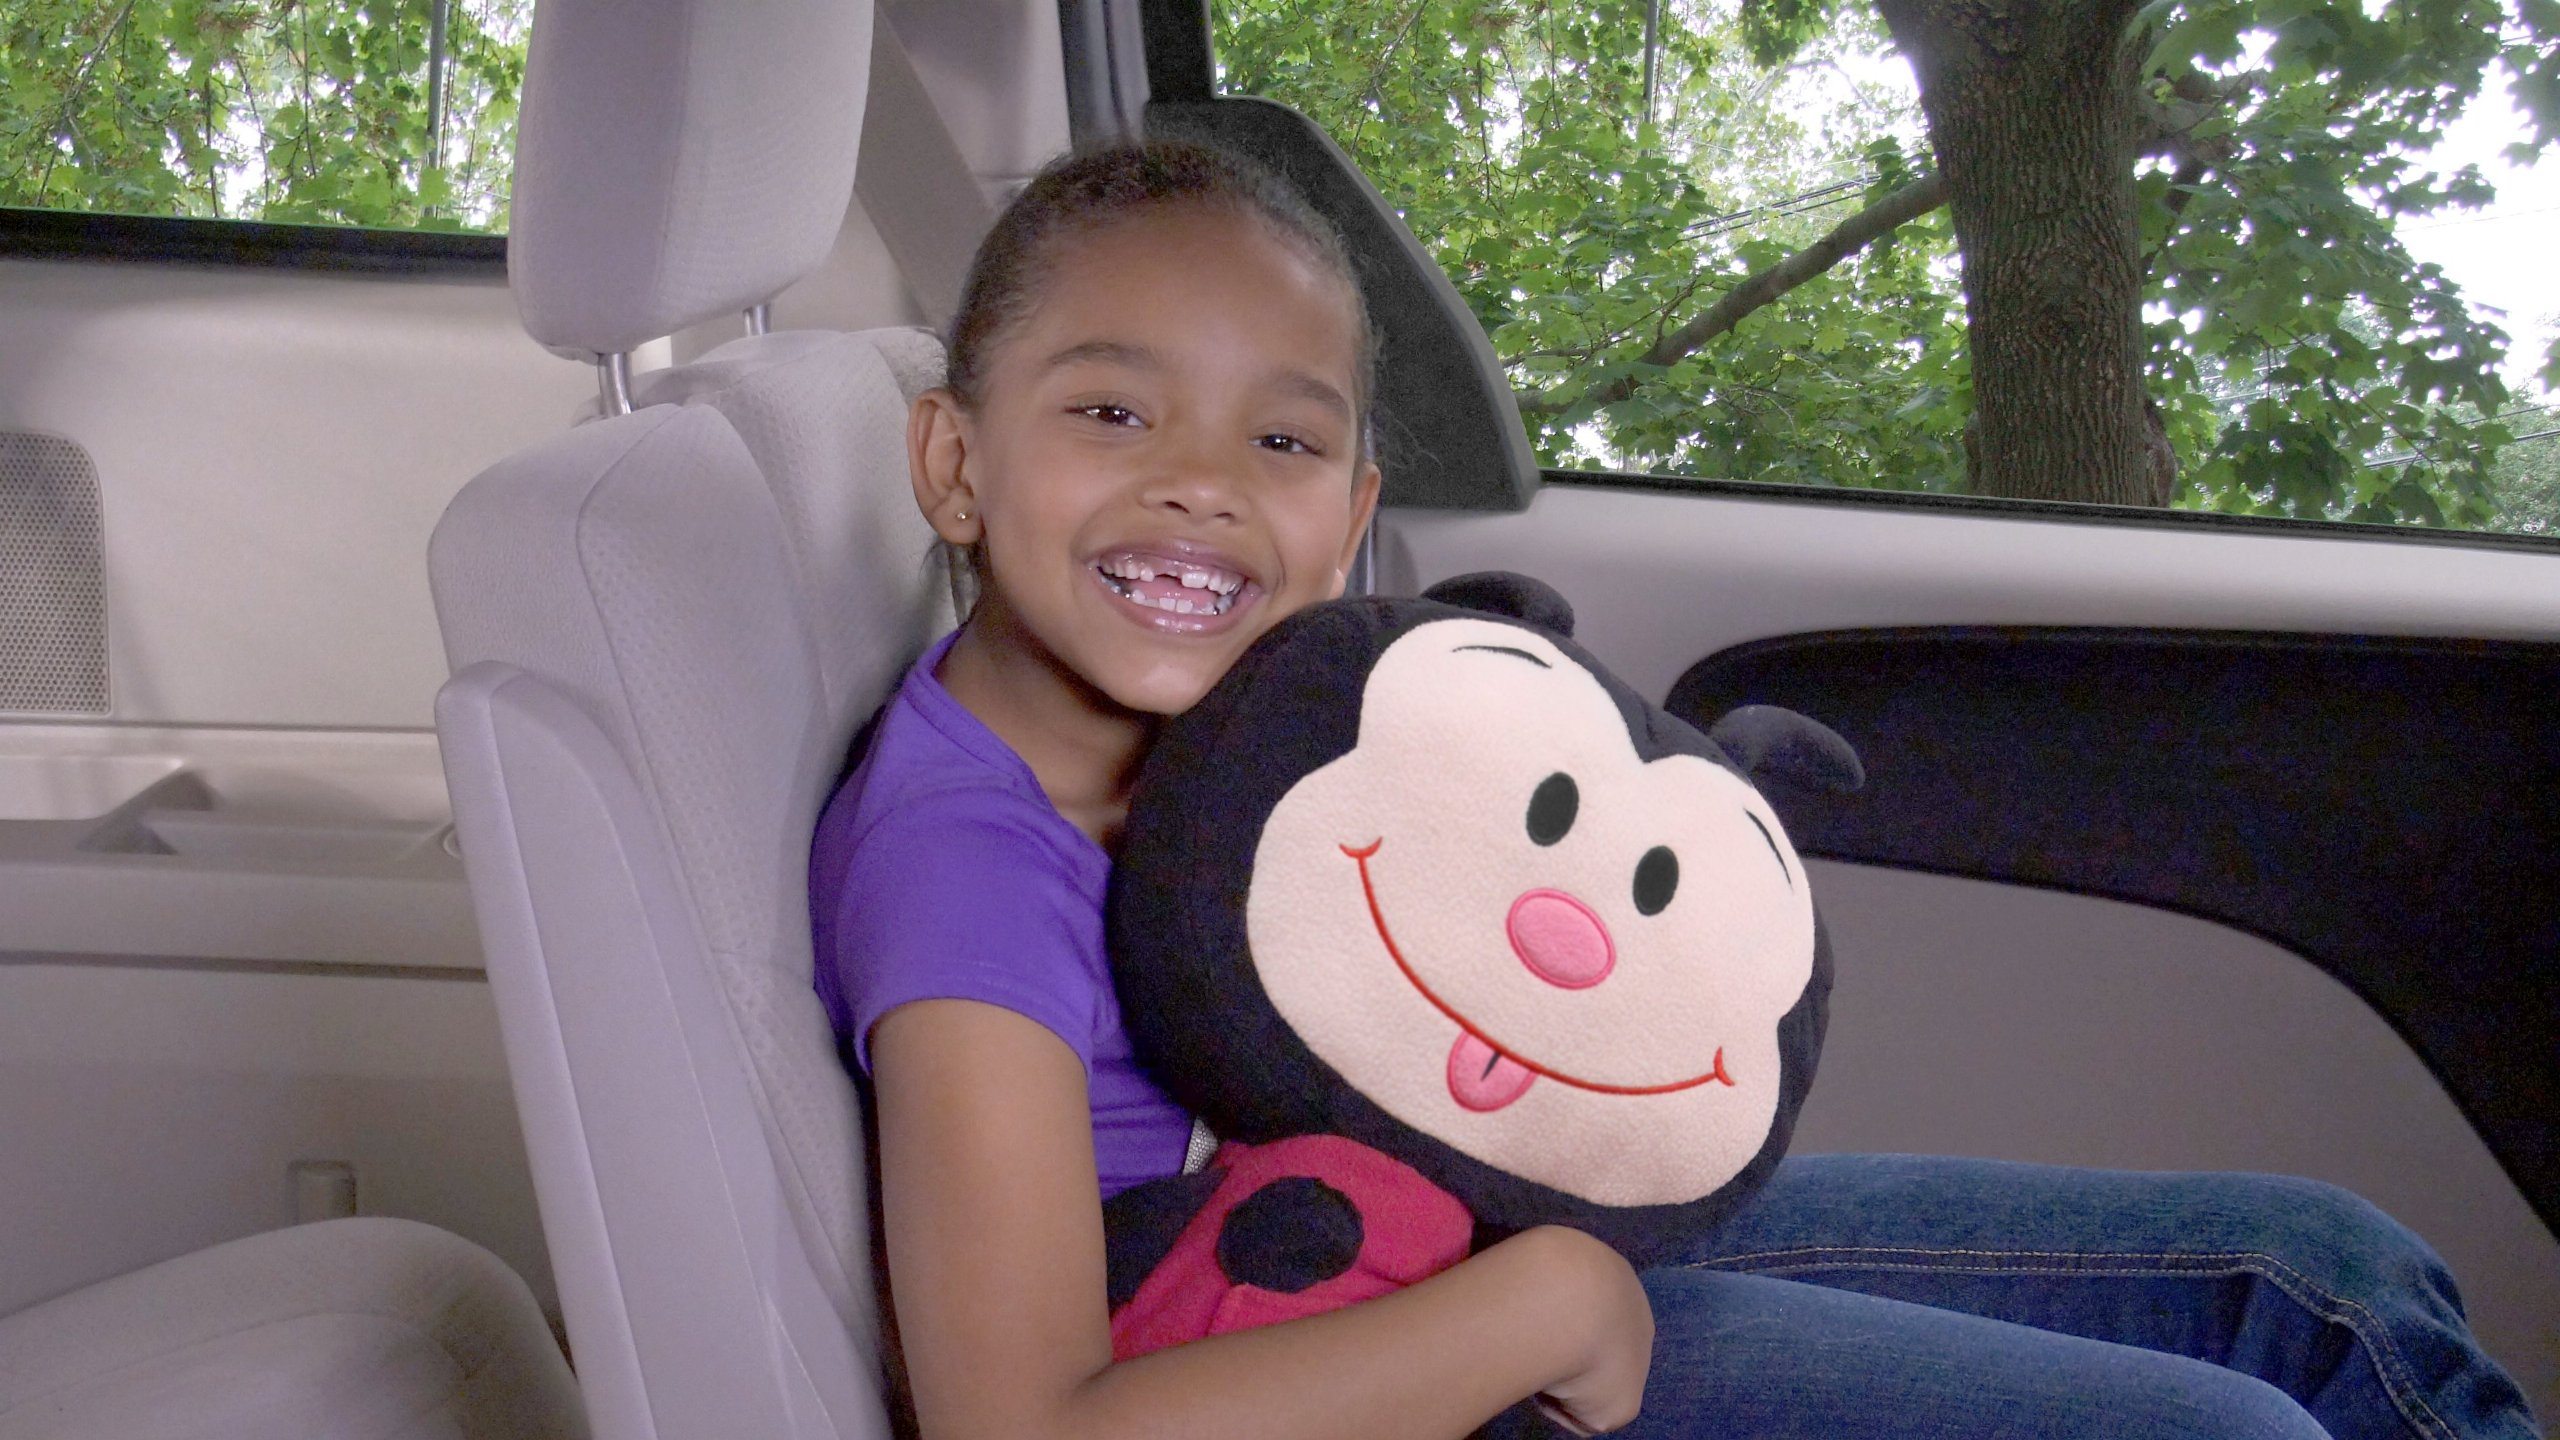 Seat Pets (Ladybug) by Jay at Play - As Seen on TV - Kids Seat Belt Car Travel Pillow and Plush Animal Toy - Compatible with Any Safety Belt to Provide Head & Neck Support